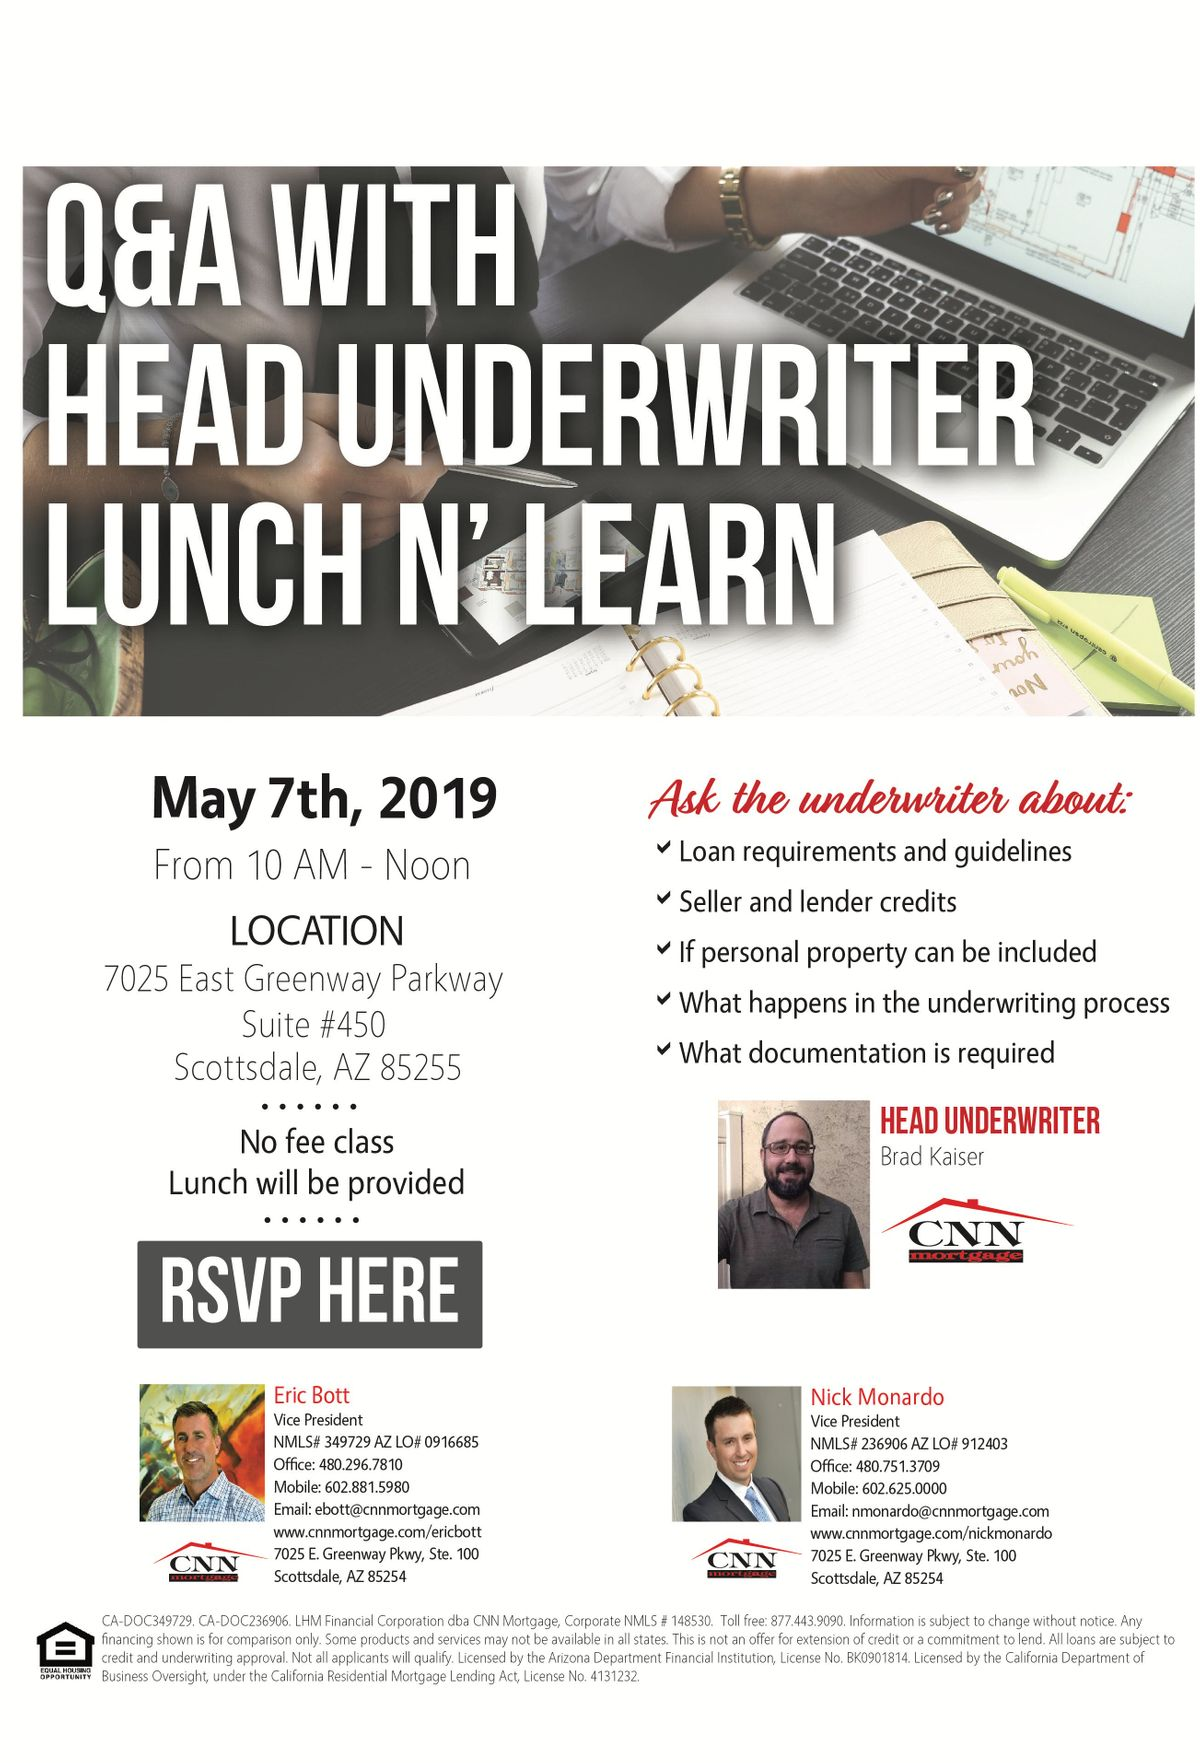 CNN Lunch and Learn w/ Underwriter Brad Kaiser May 9th at CNN